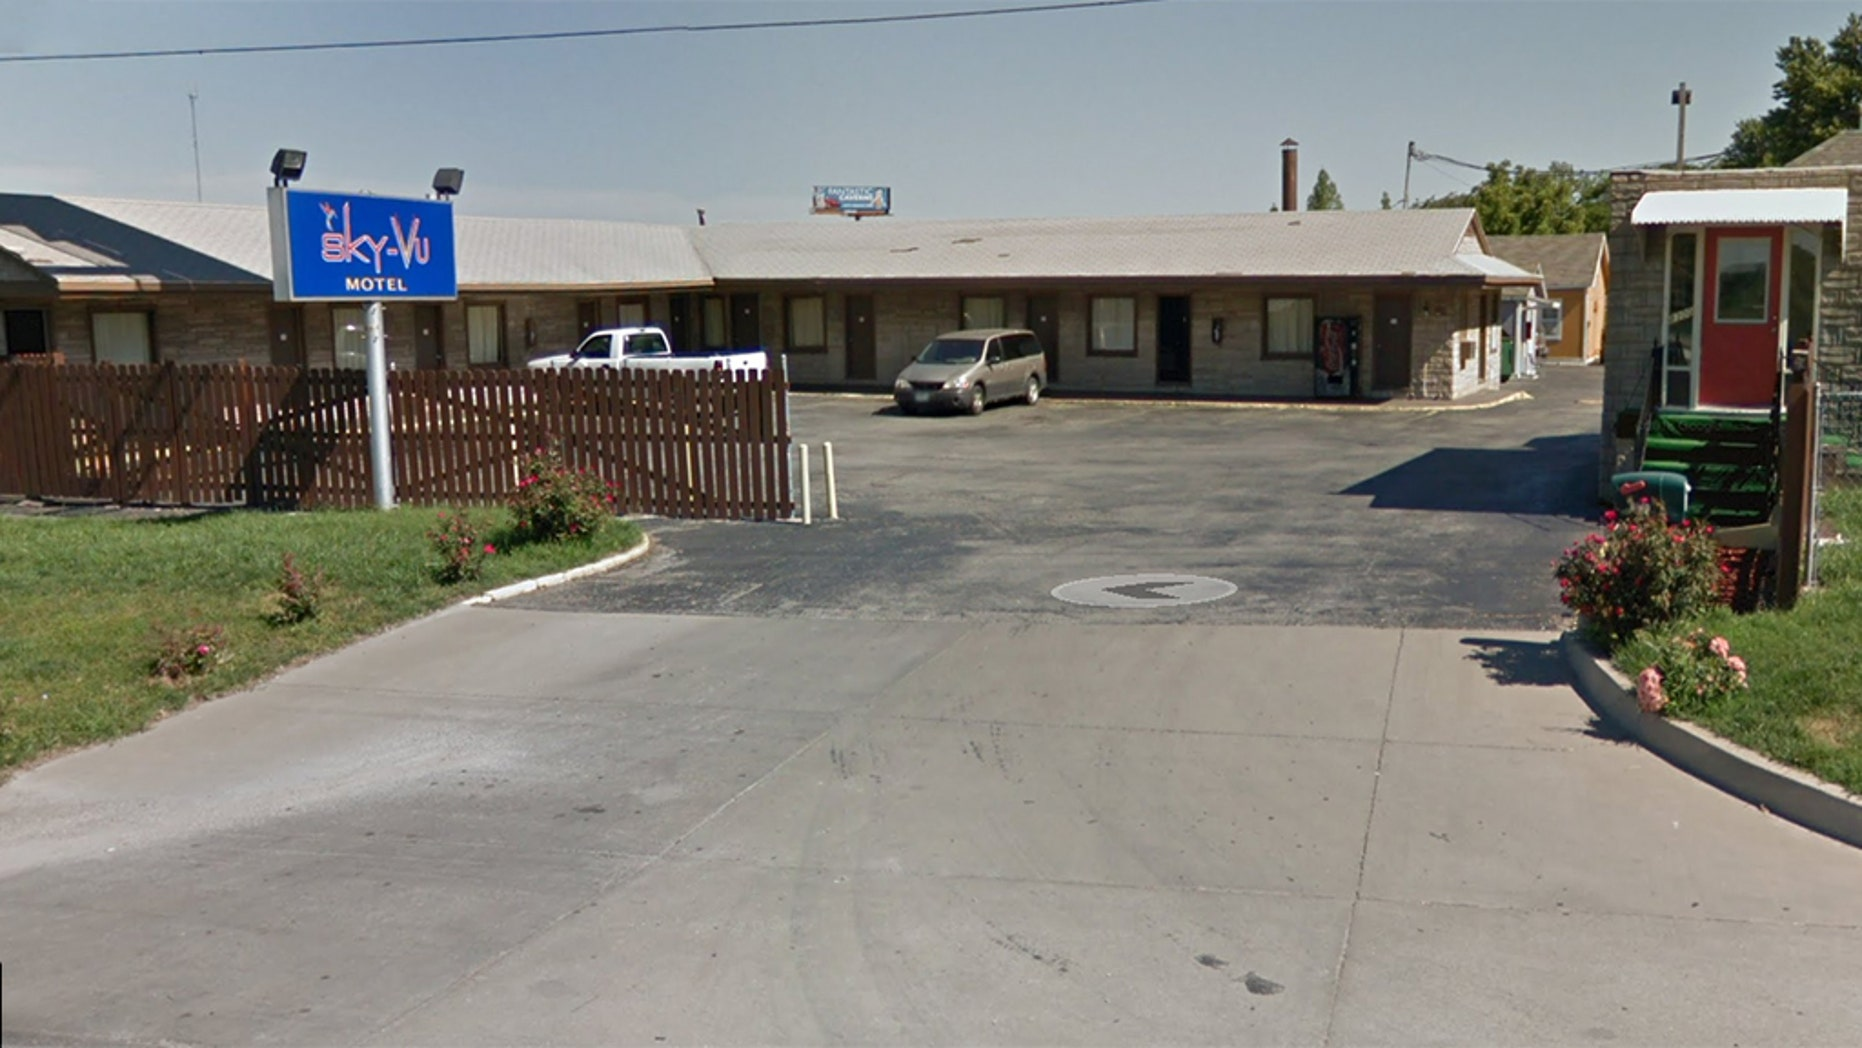 Two undercover cops were working on an investigation at the Sky-Vu Motel (pictured) in Kansas City, Missouri, when they were shot about 12:15 p.m. One of the three wounded officers was hit after police started to exchange gunfire with the suspect. (Google Maps)